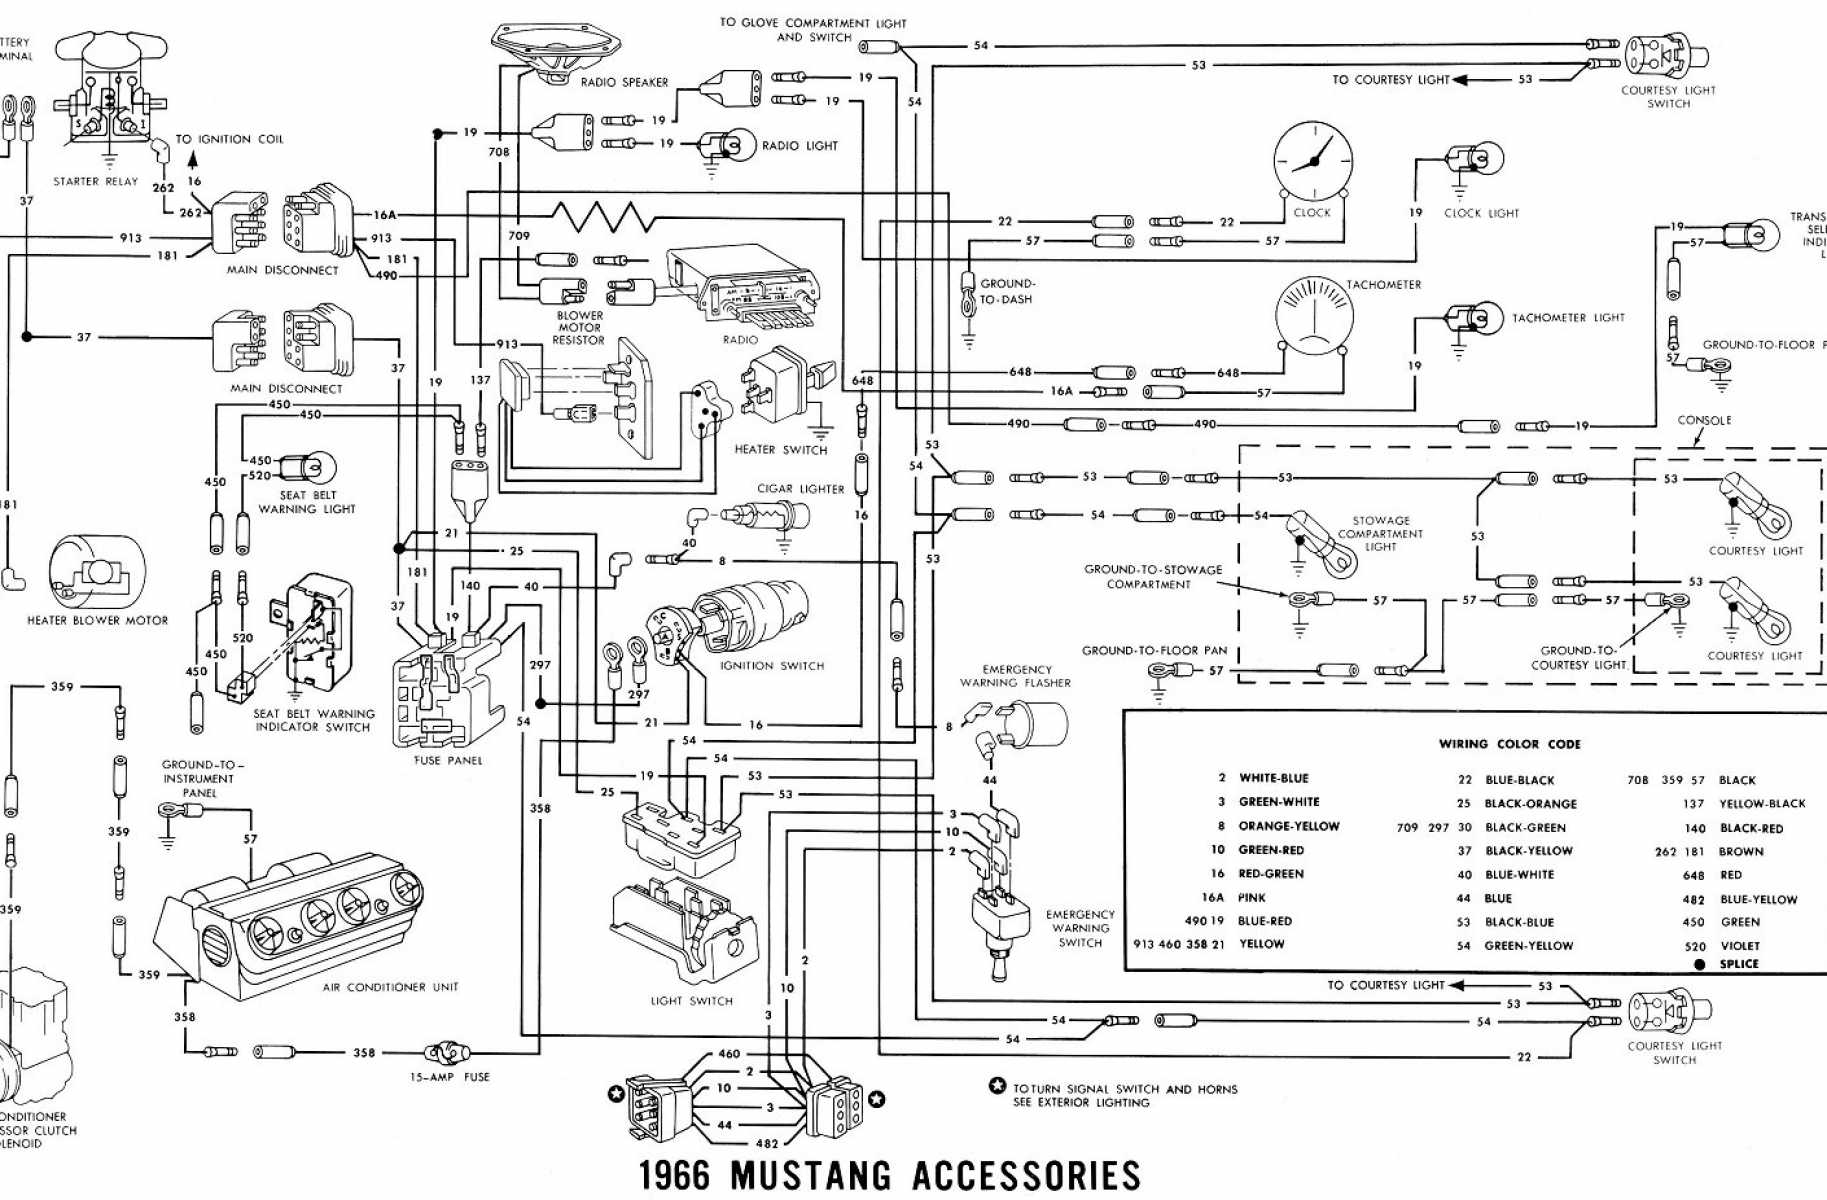 hight resolution of 13 pin boss plow wiring diagram wiring diagram load boss snow plow 13 pin wiring harness